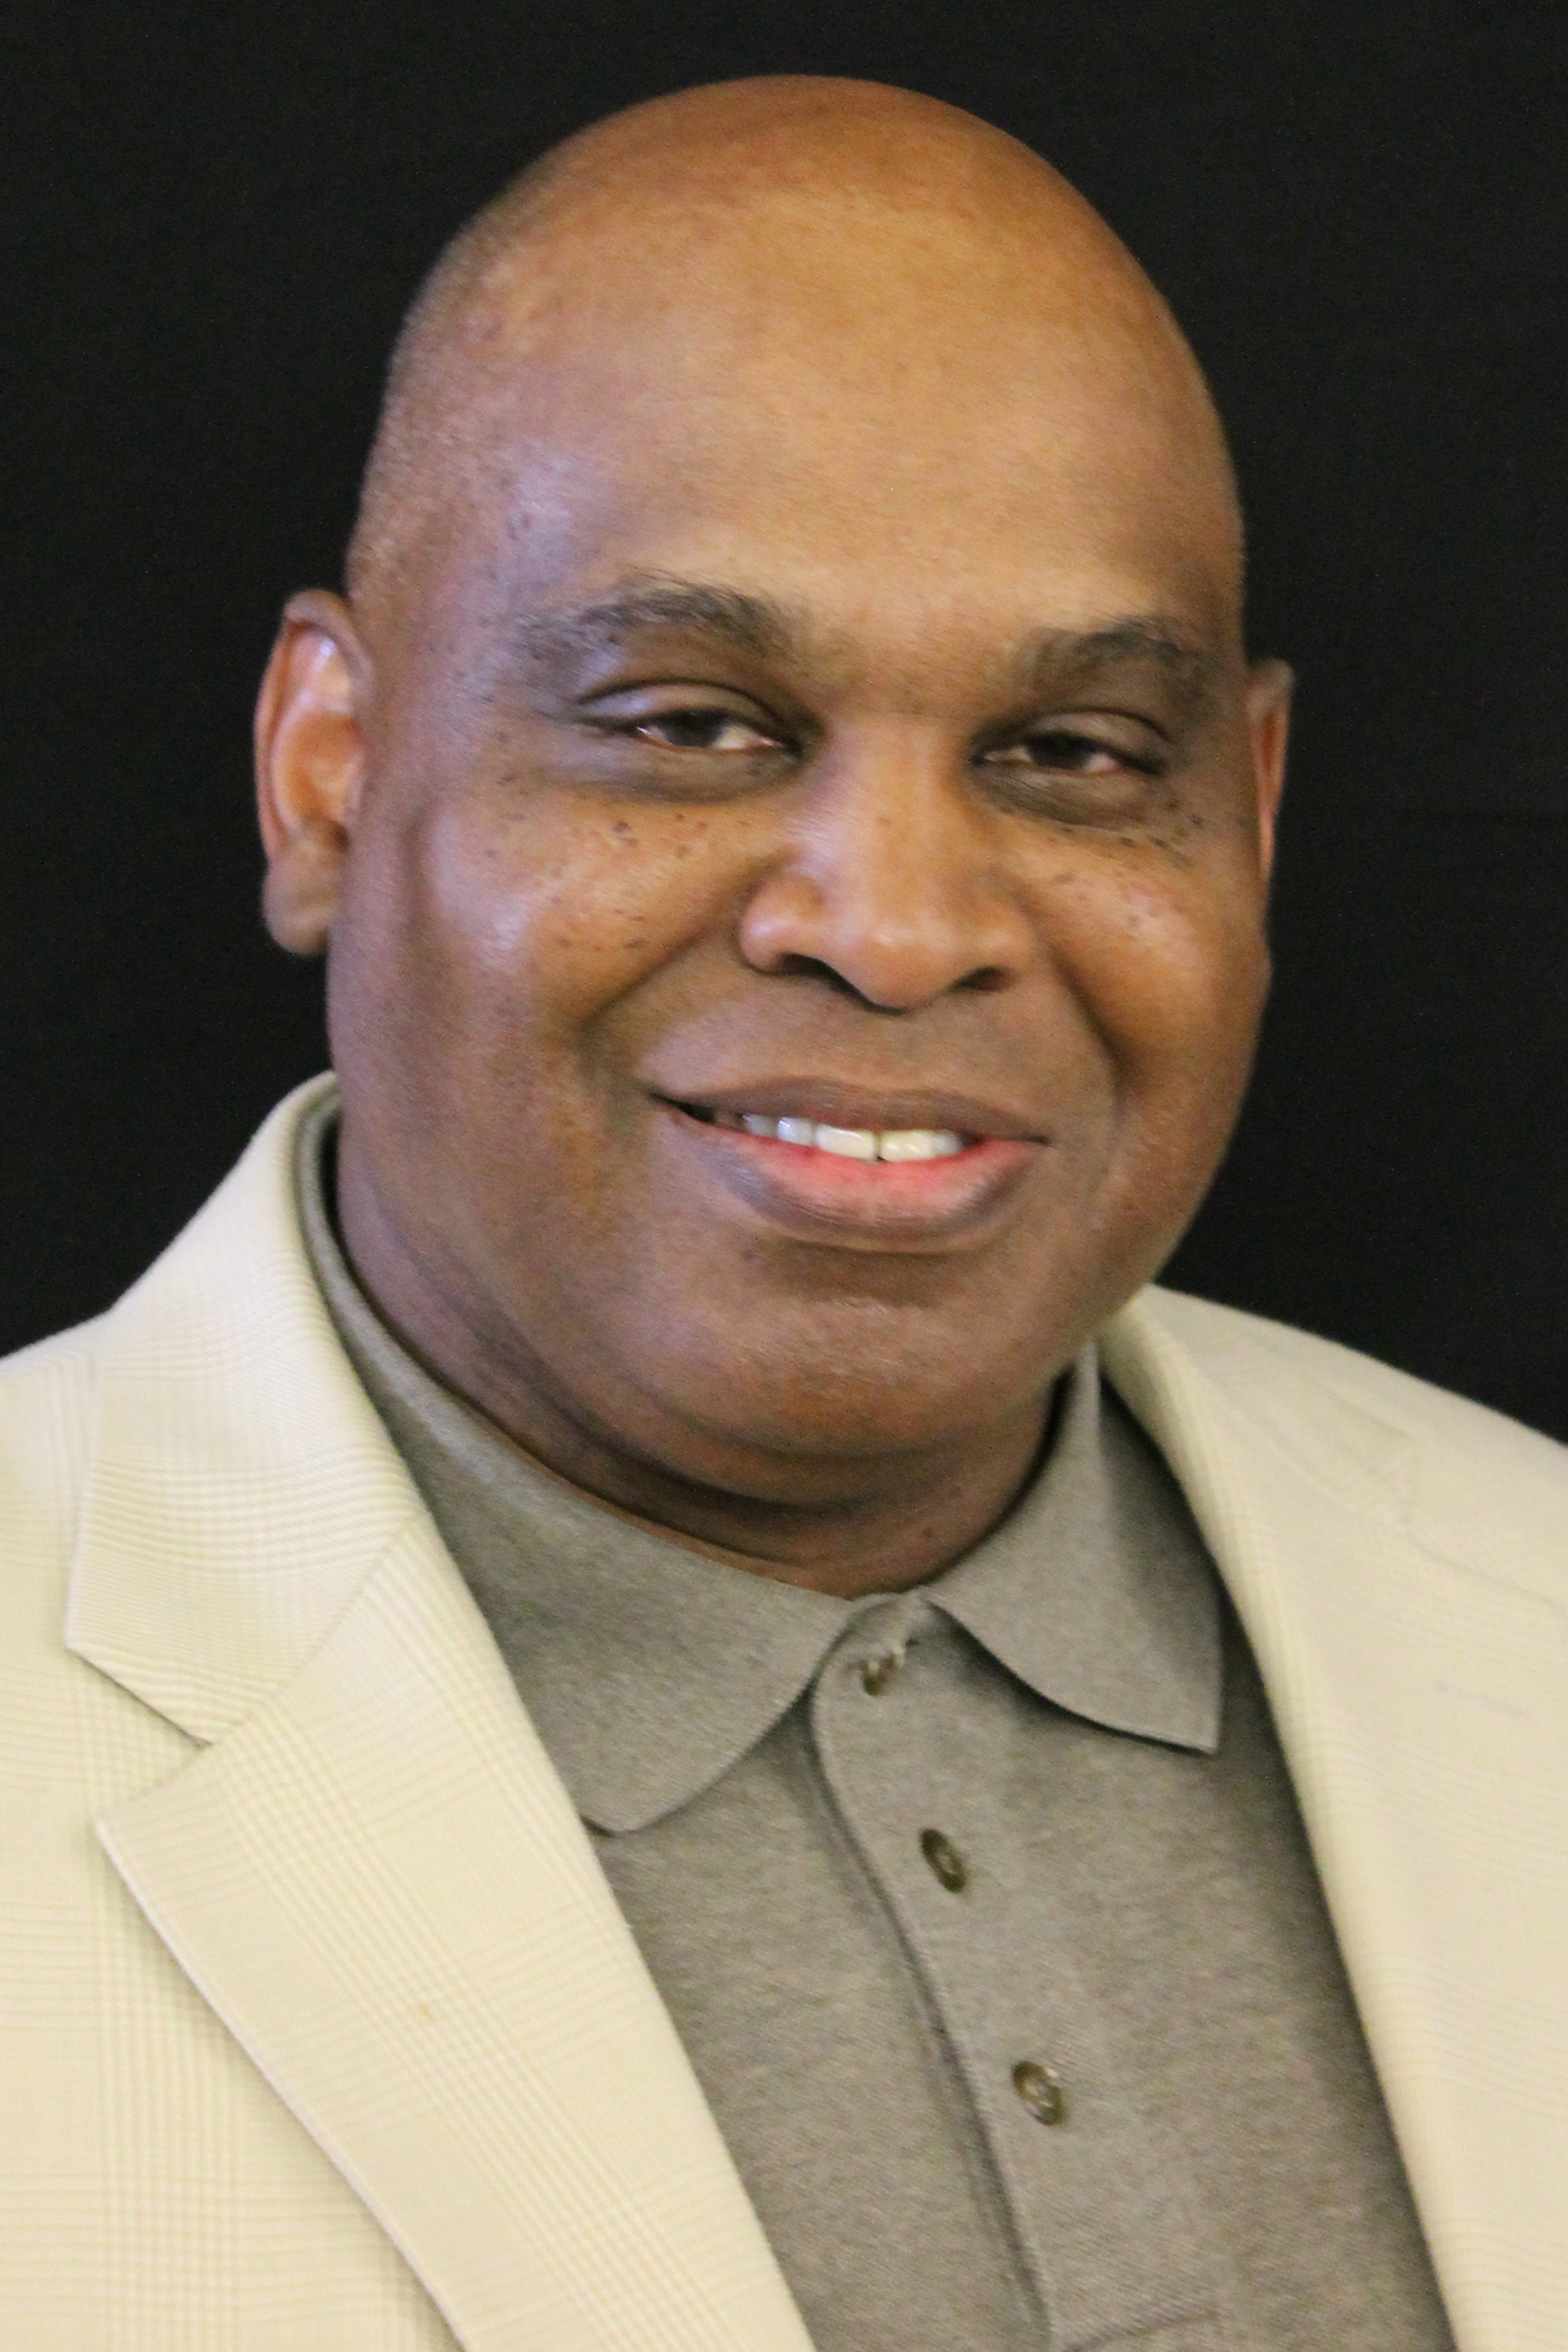 Dr. Willie Belton